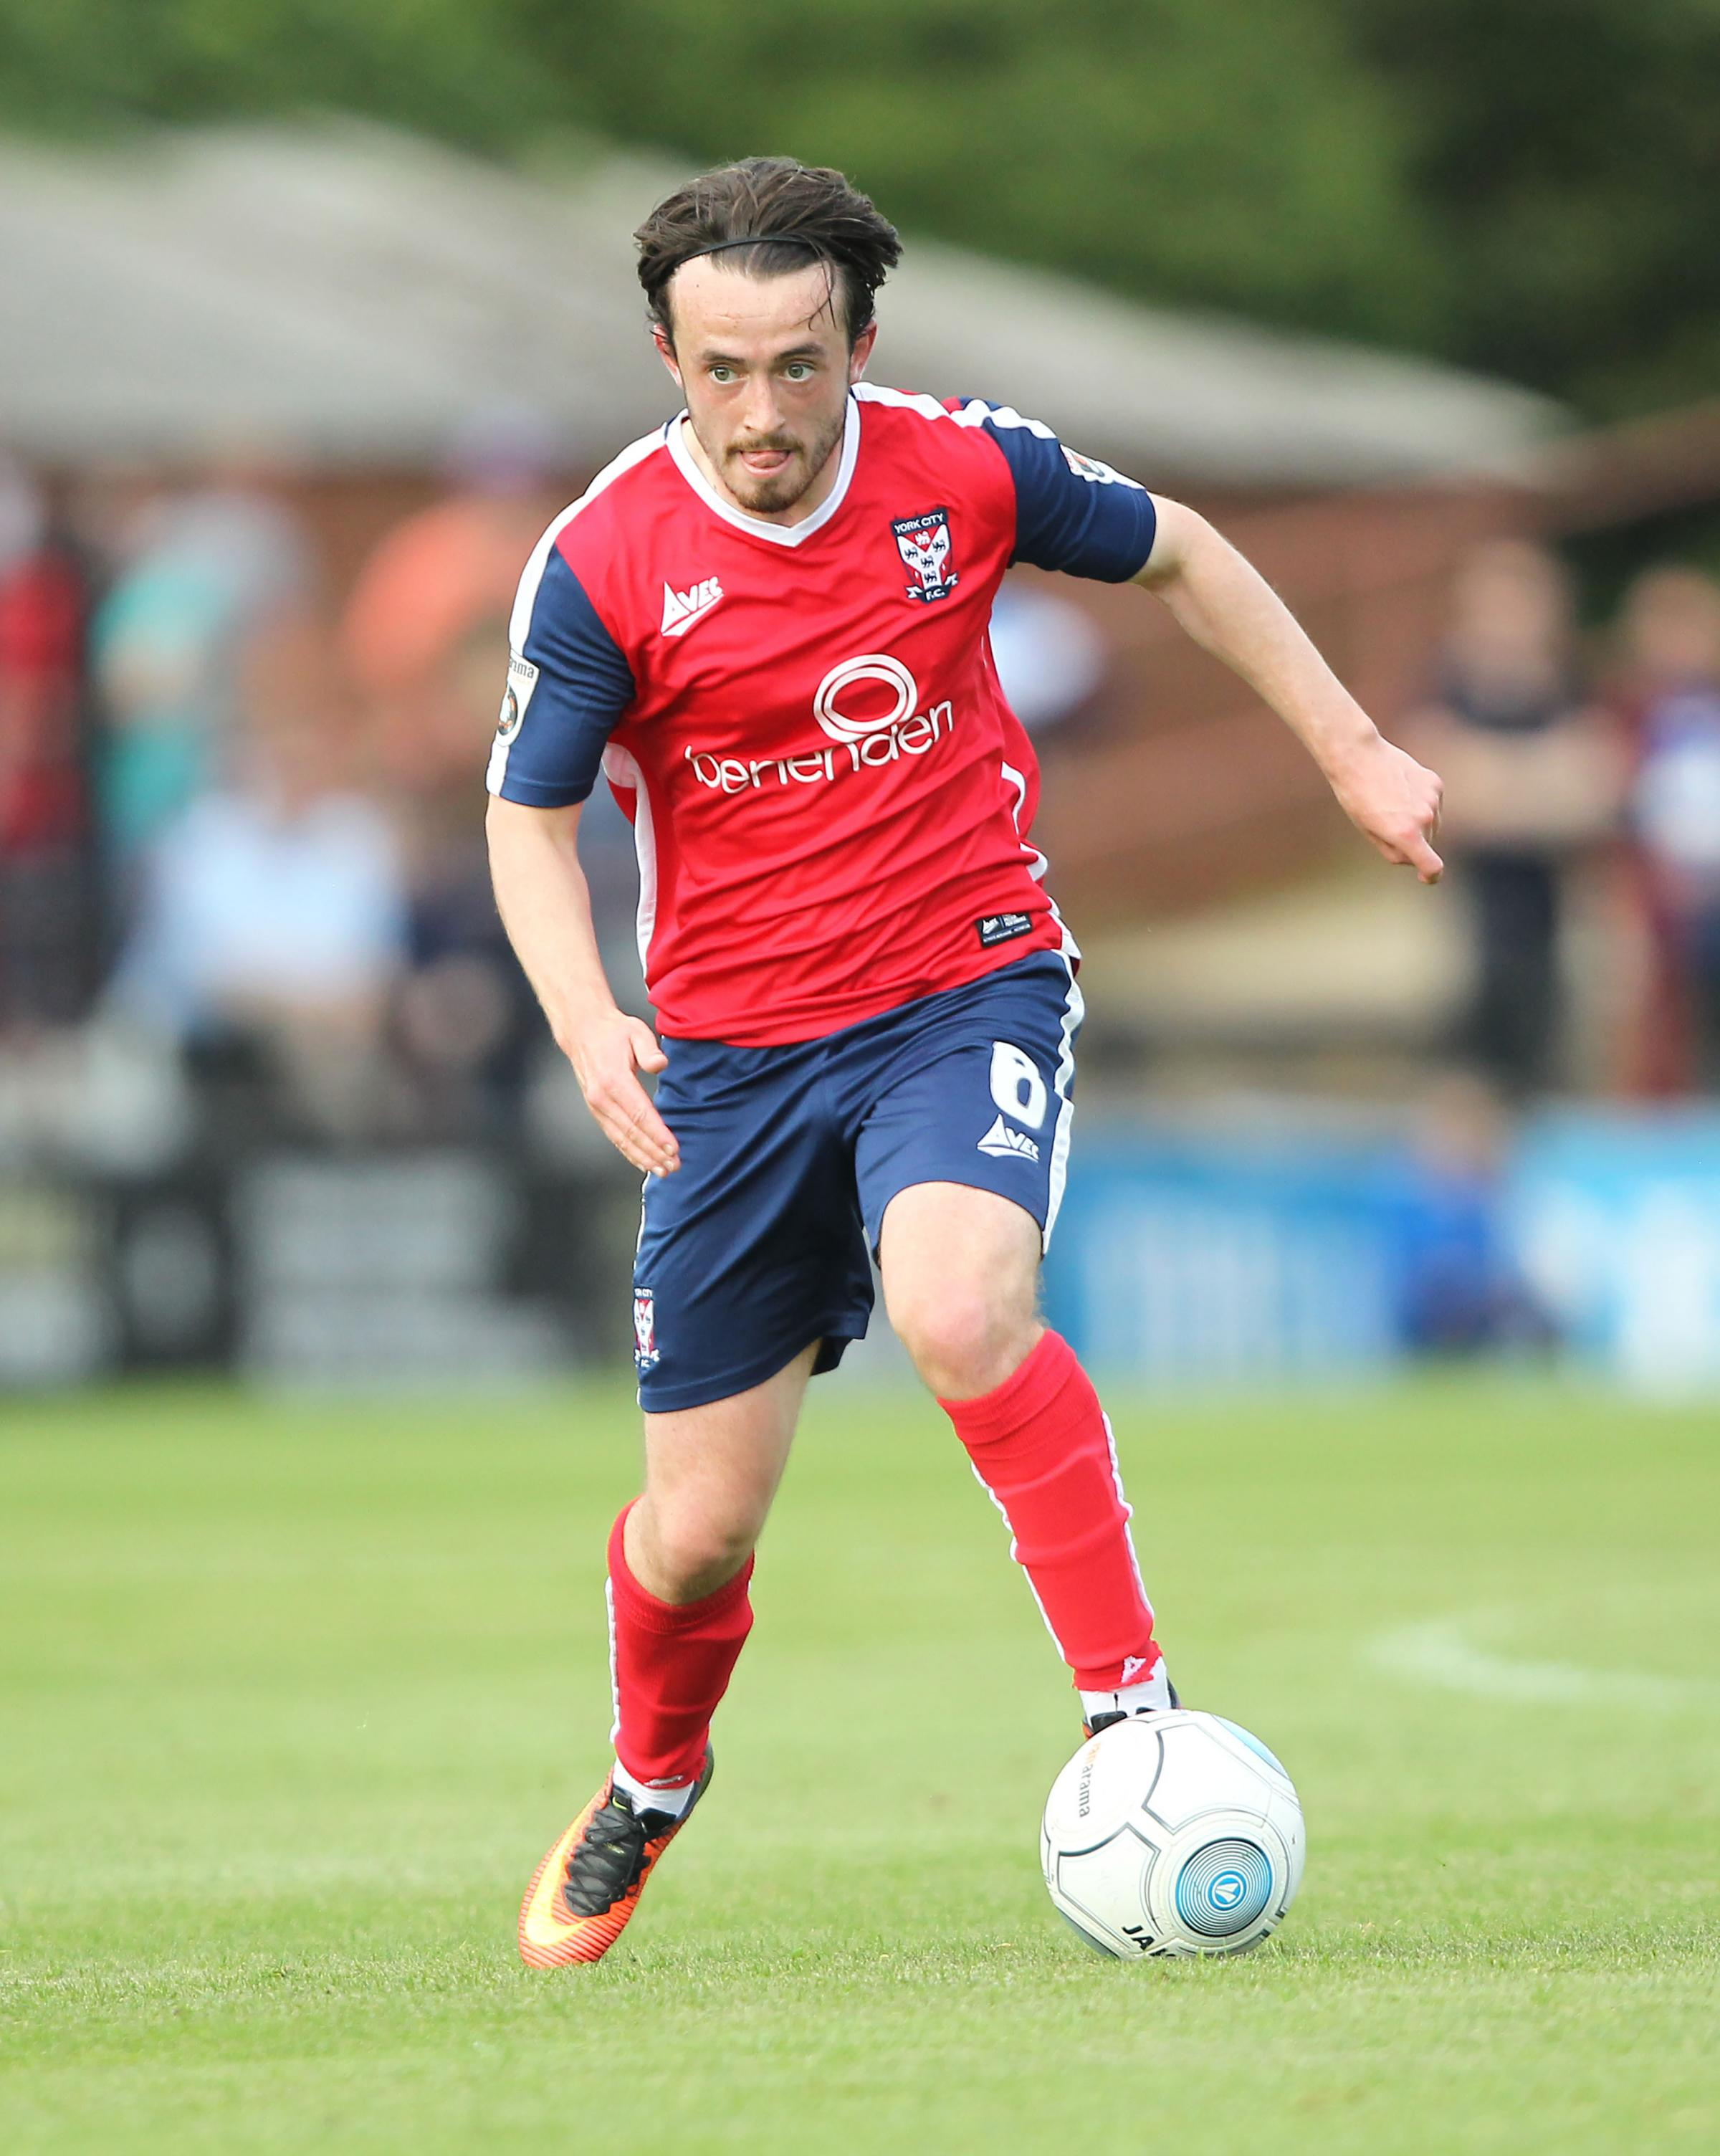 AIDING THE CAUSE: York City attacker Aidan Connolly believes new forward signings will get the best out of everybody